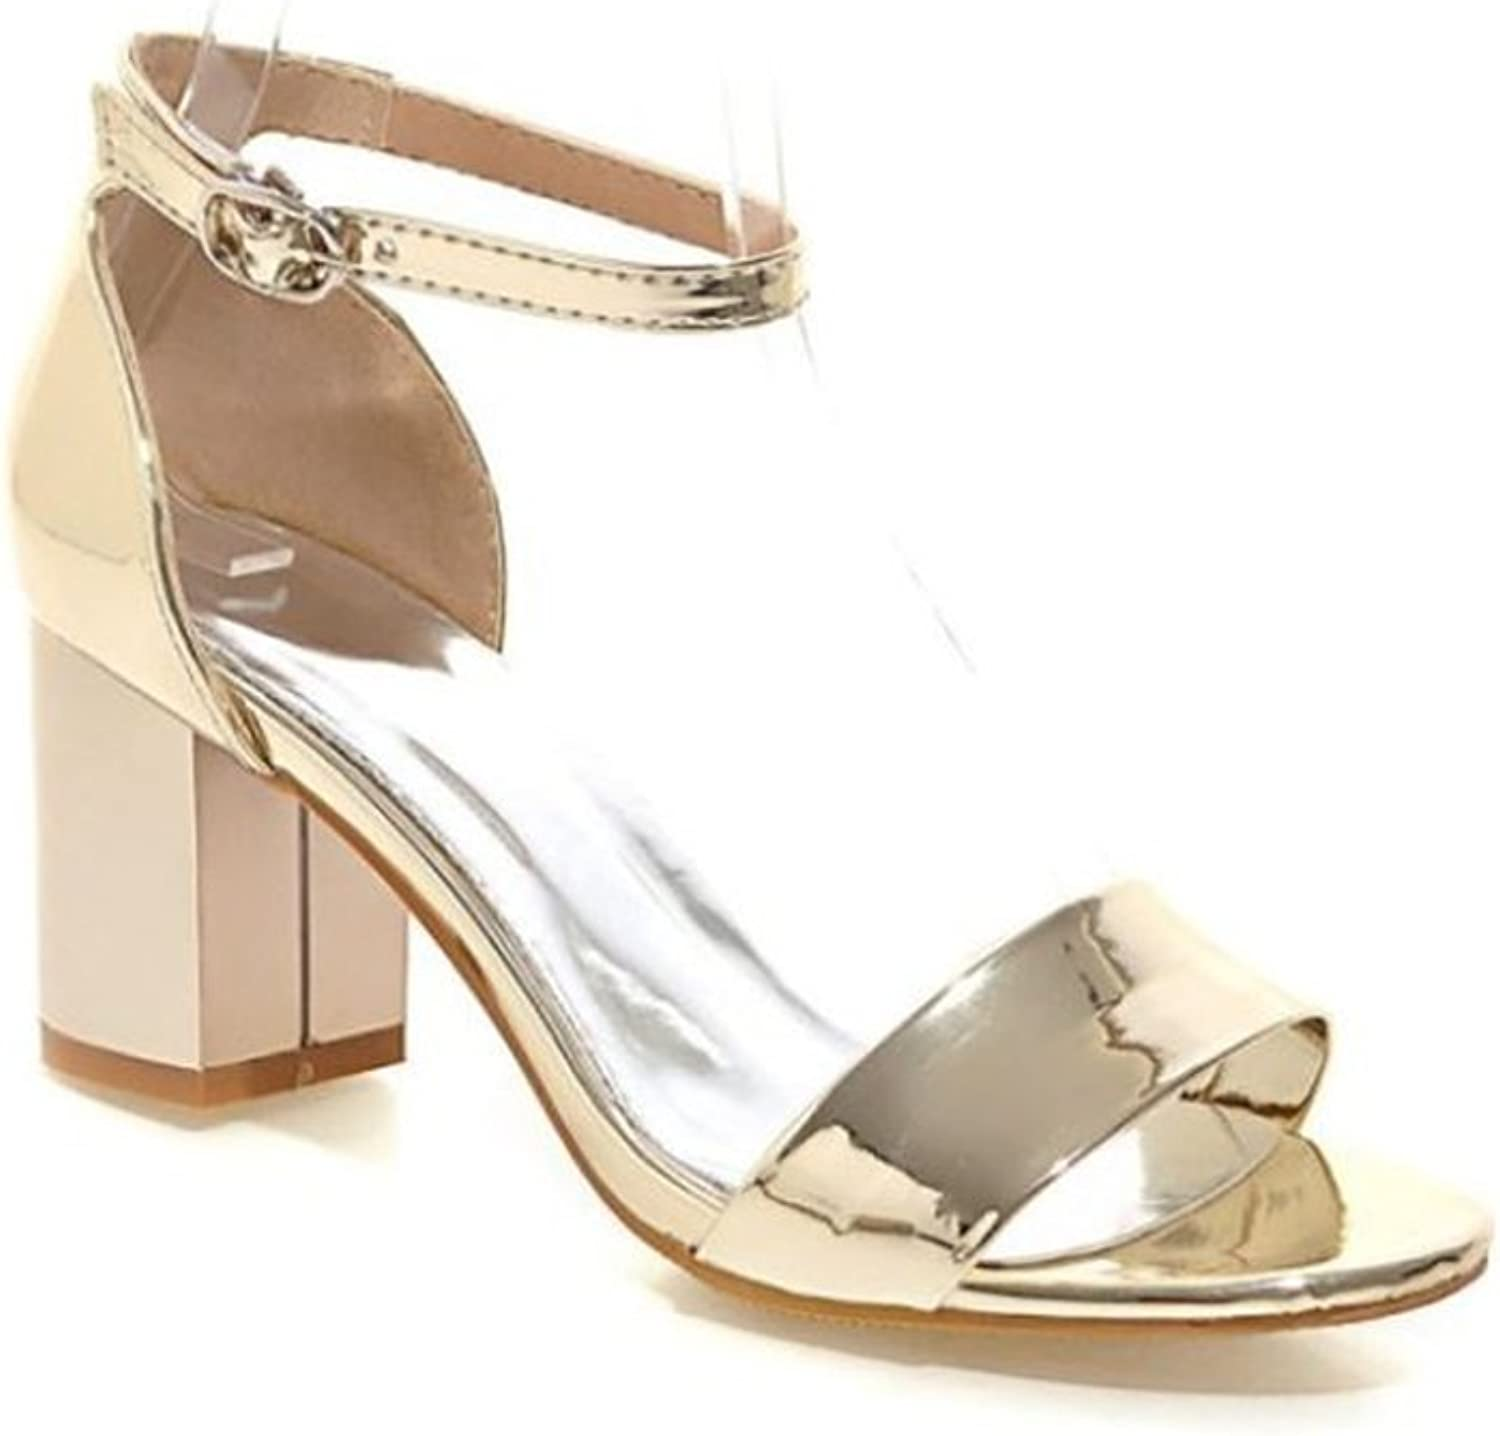 Women's Lace-up Metal Buckle Heel mps - Formal, Wedding, Party Simple Classic mps